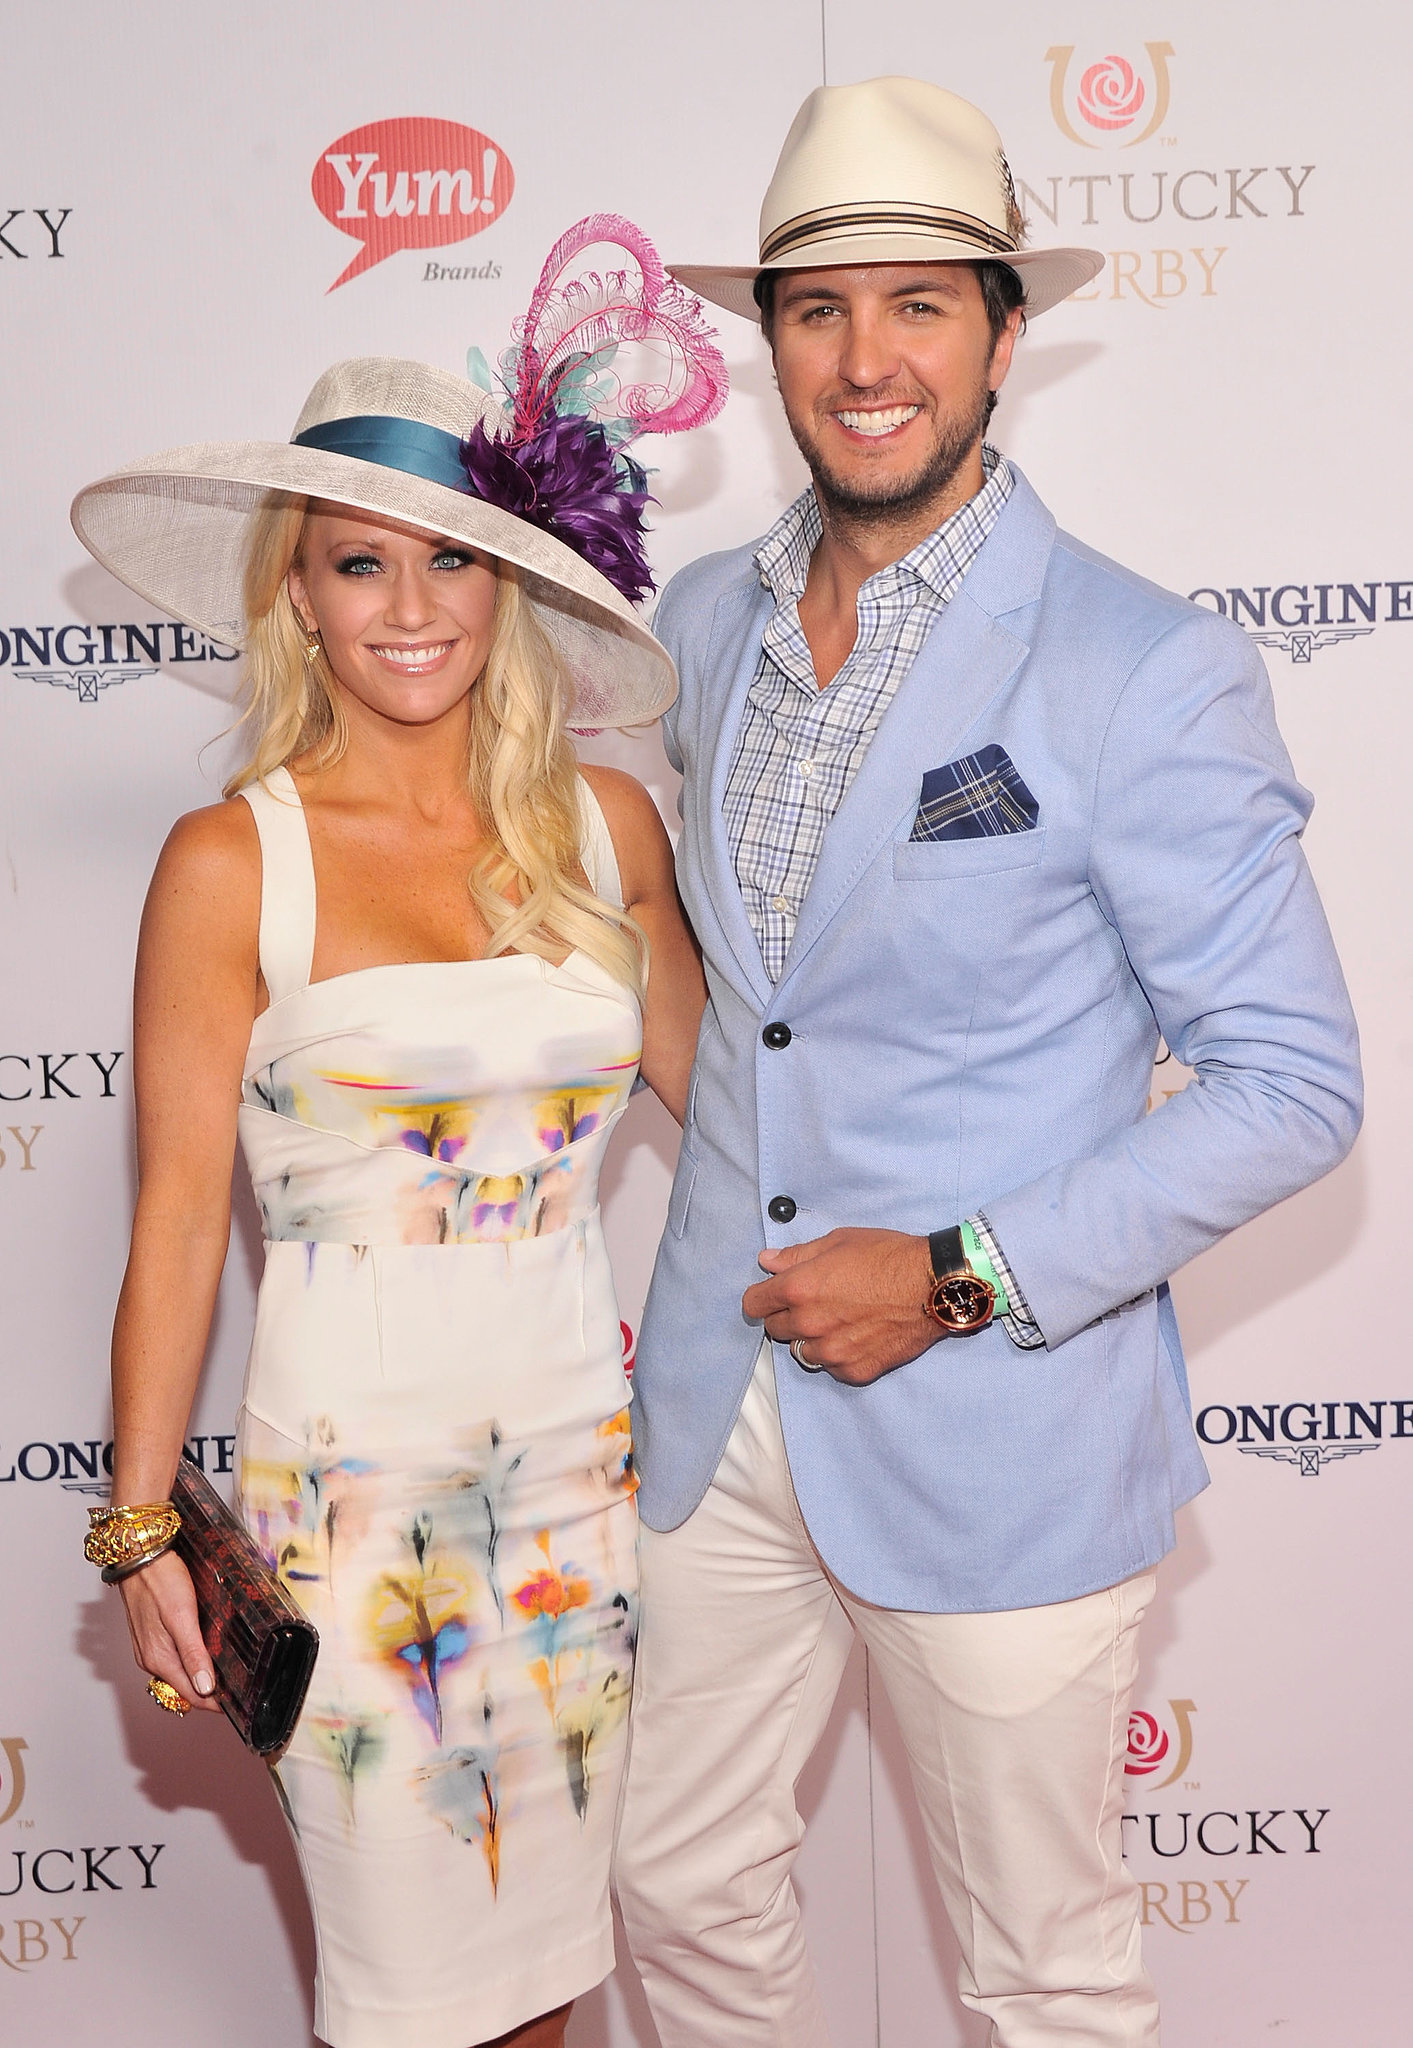 Luke Bryan and his wife, Caroline Boyer, coordinated their hats in 2013.